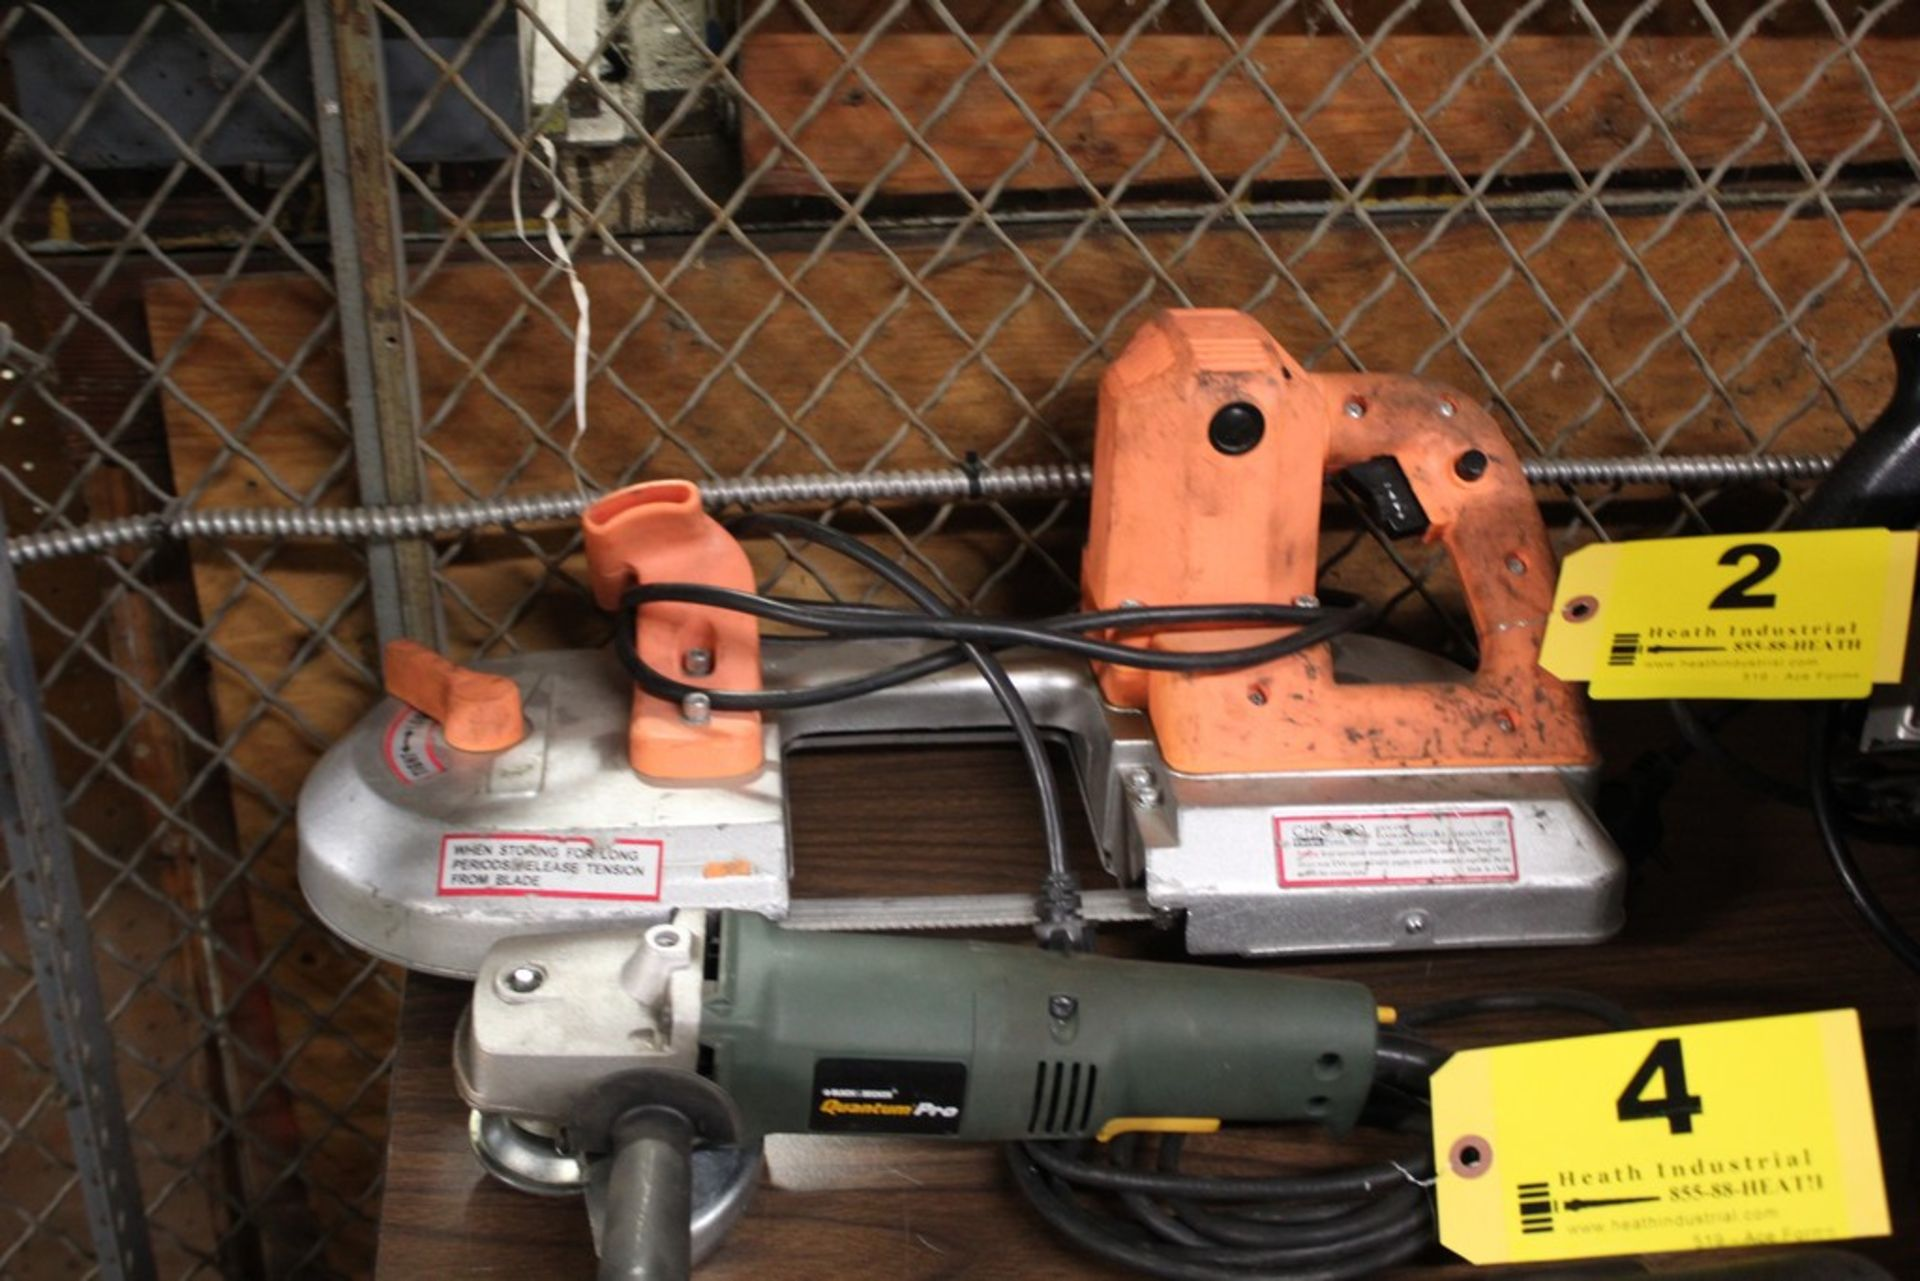 Lot 2 - CHICAGO ELECTRIC MODEL 47840 PORTABLE BAND SAW, VARIABLE SPEED